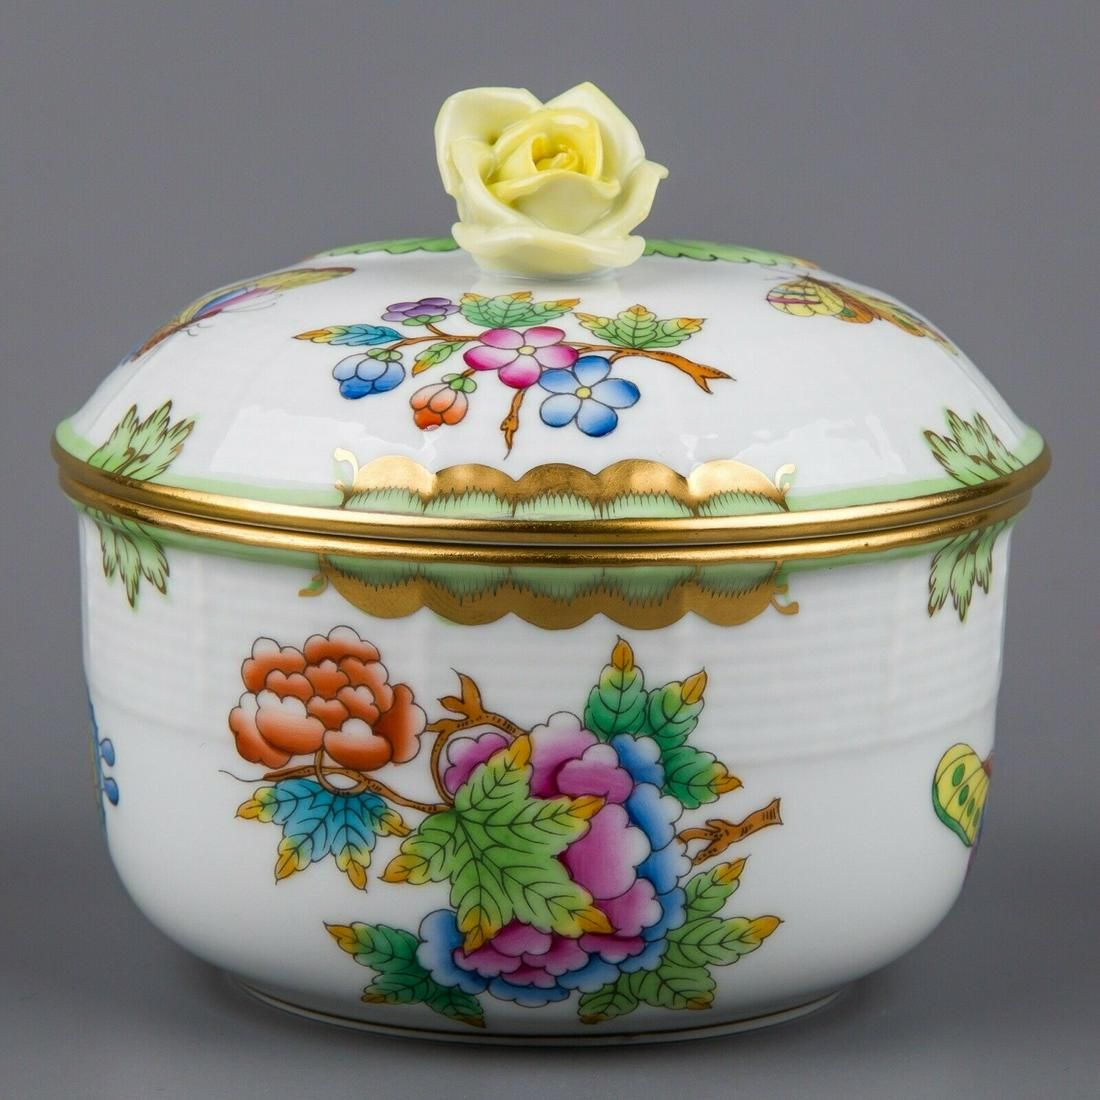 Herend Queen Victoria Large Sugar Bowl with Yellow Rose